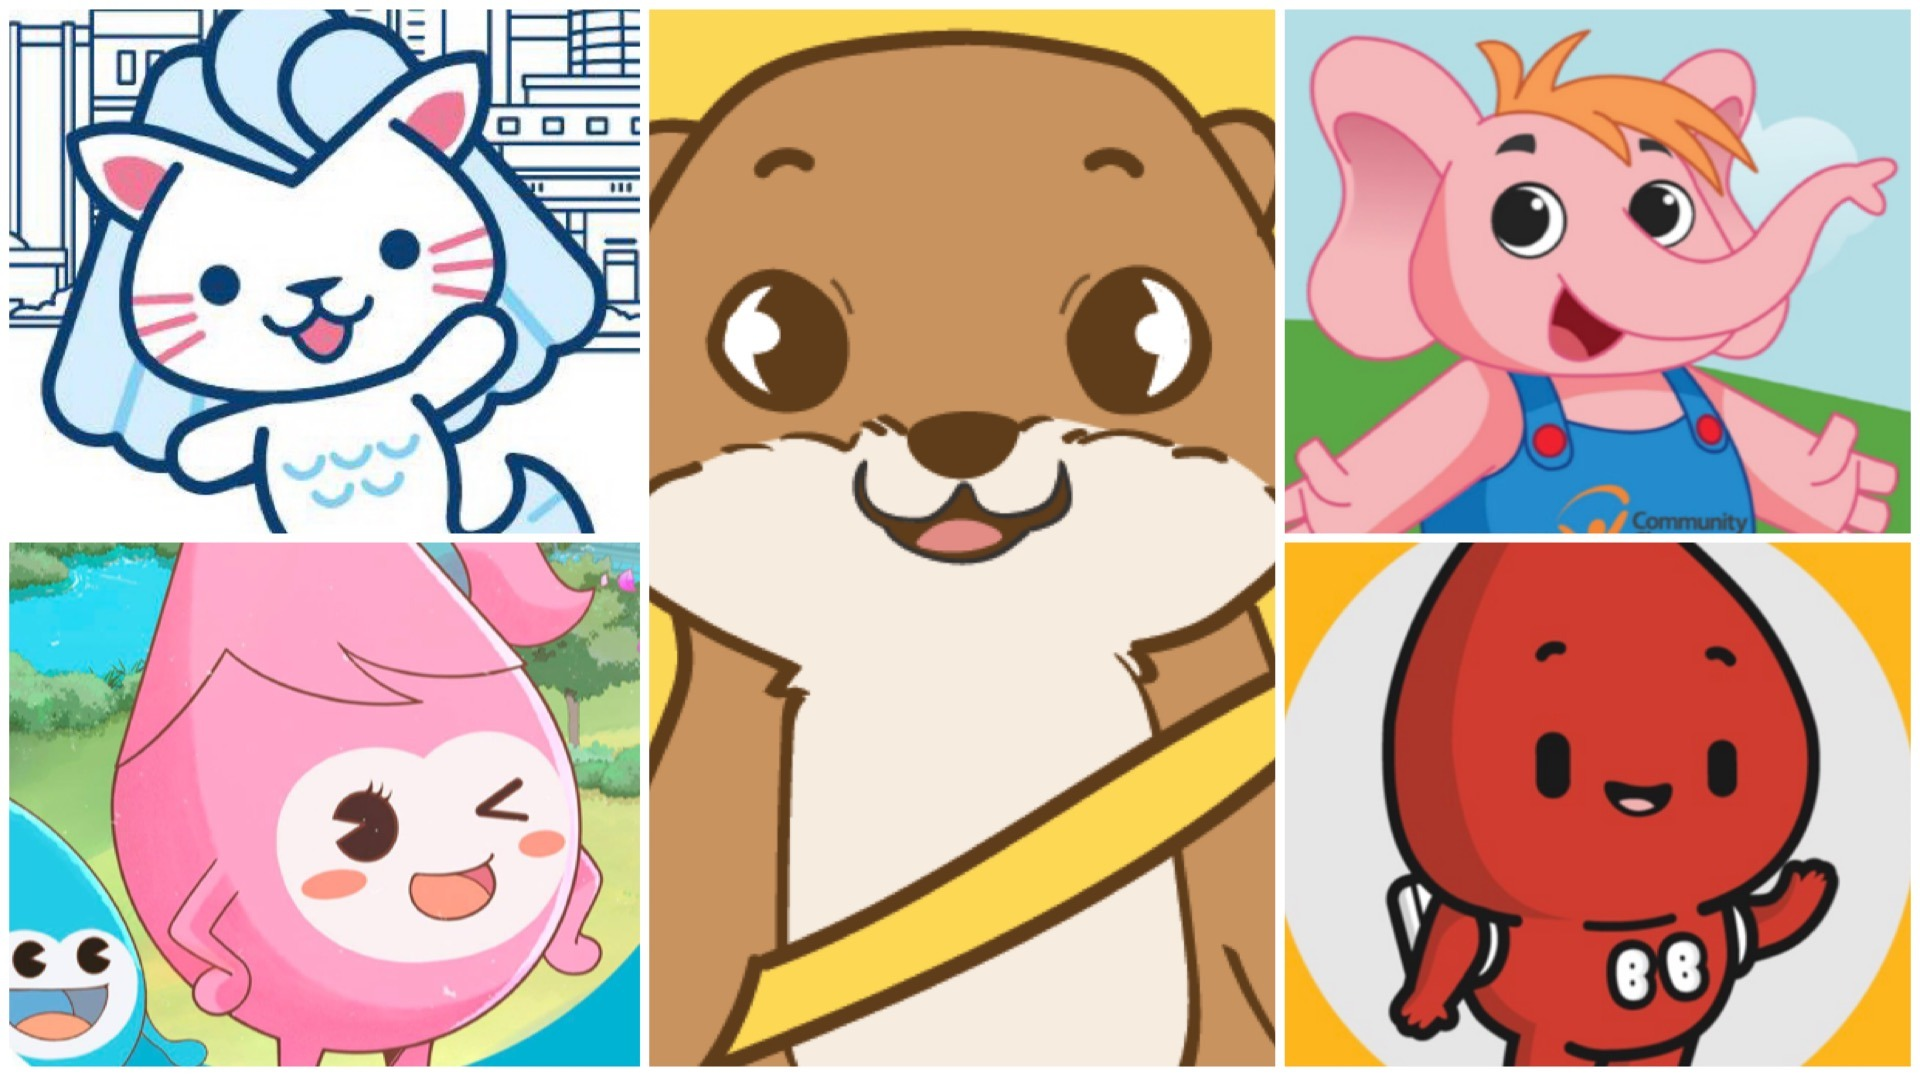 Do You Even Know These Singapore Mascots Exist?